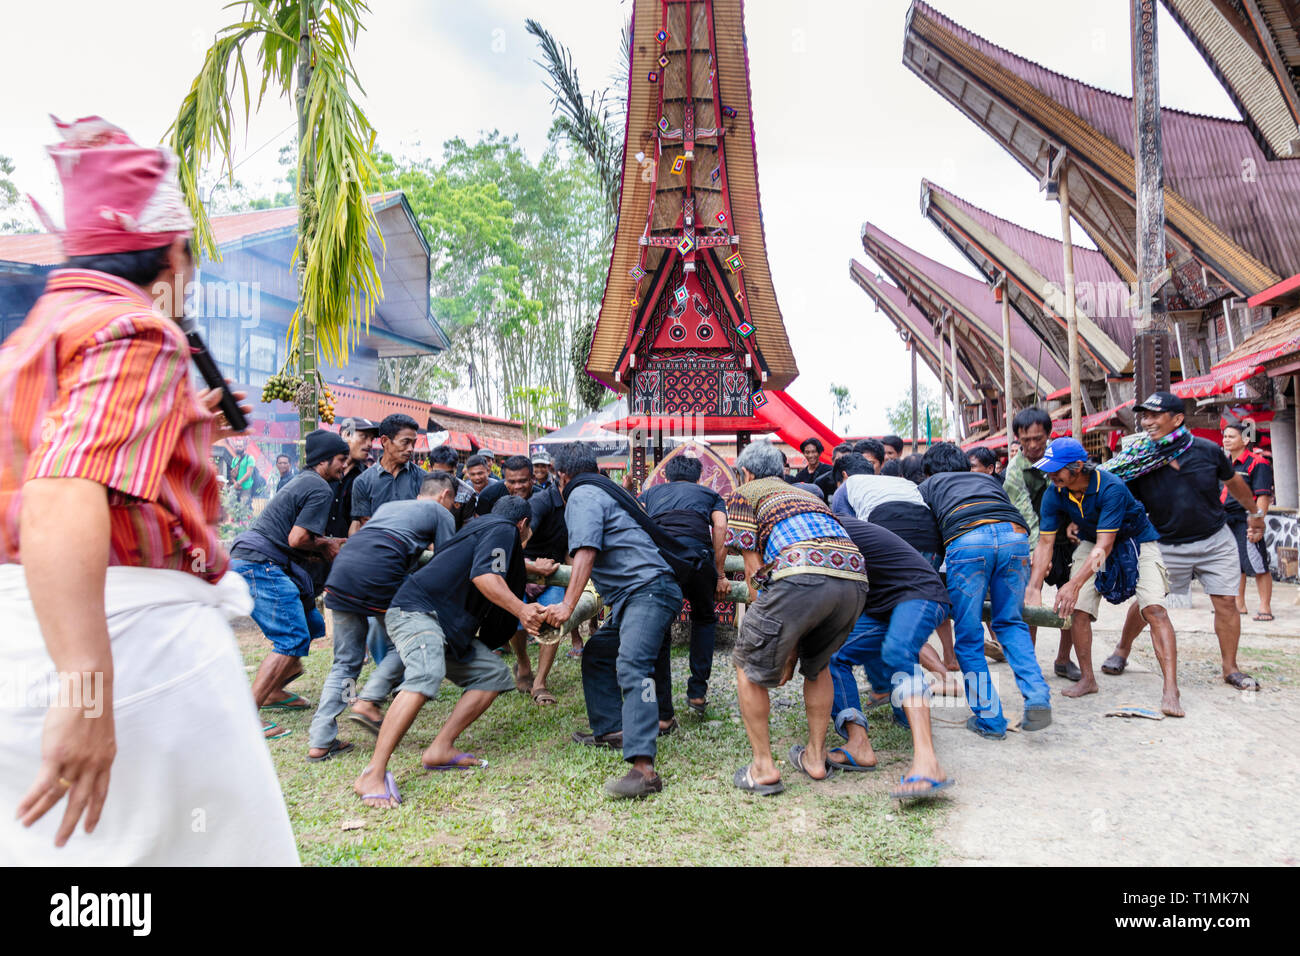 A funeral procession and ritual in a village in Tana Toraja, Sulawesi, Indonesia - Stock Image